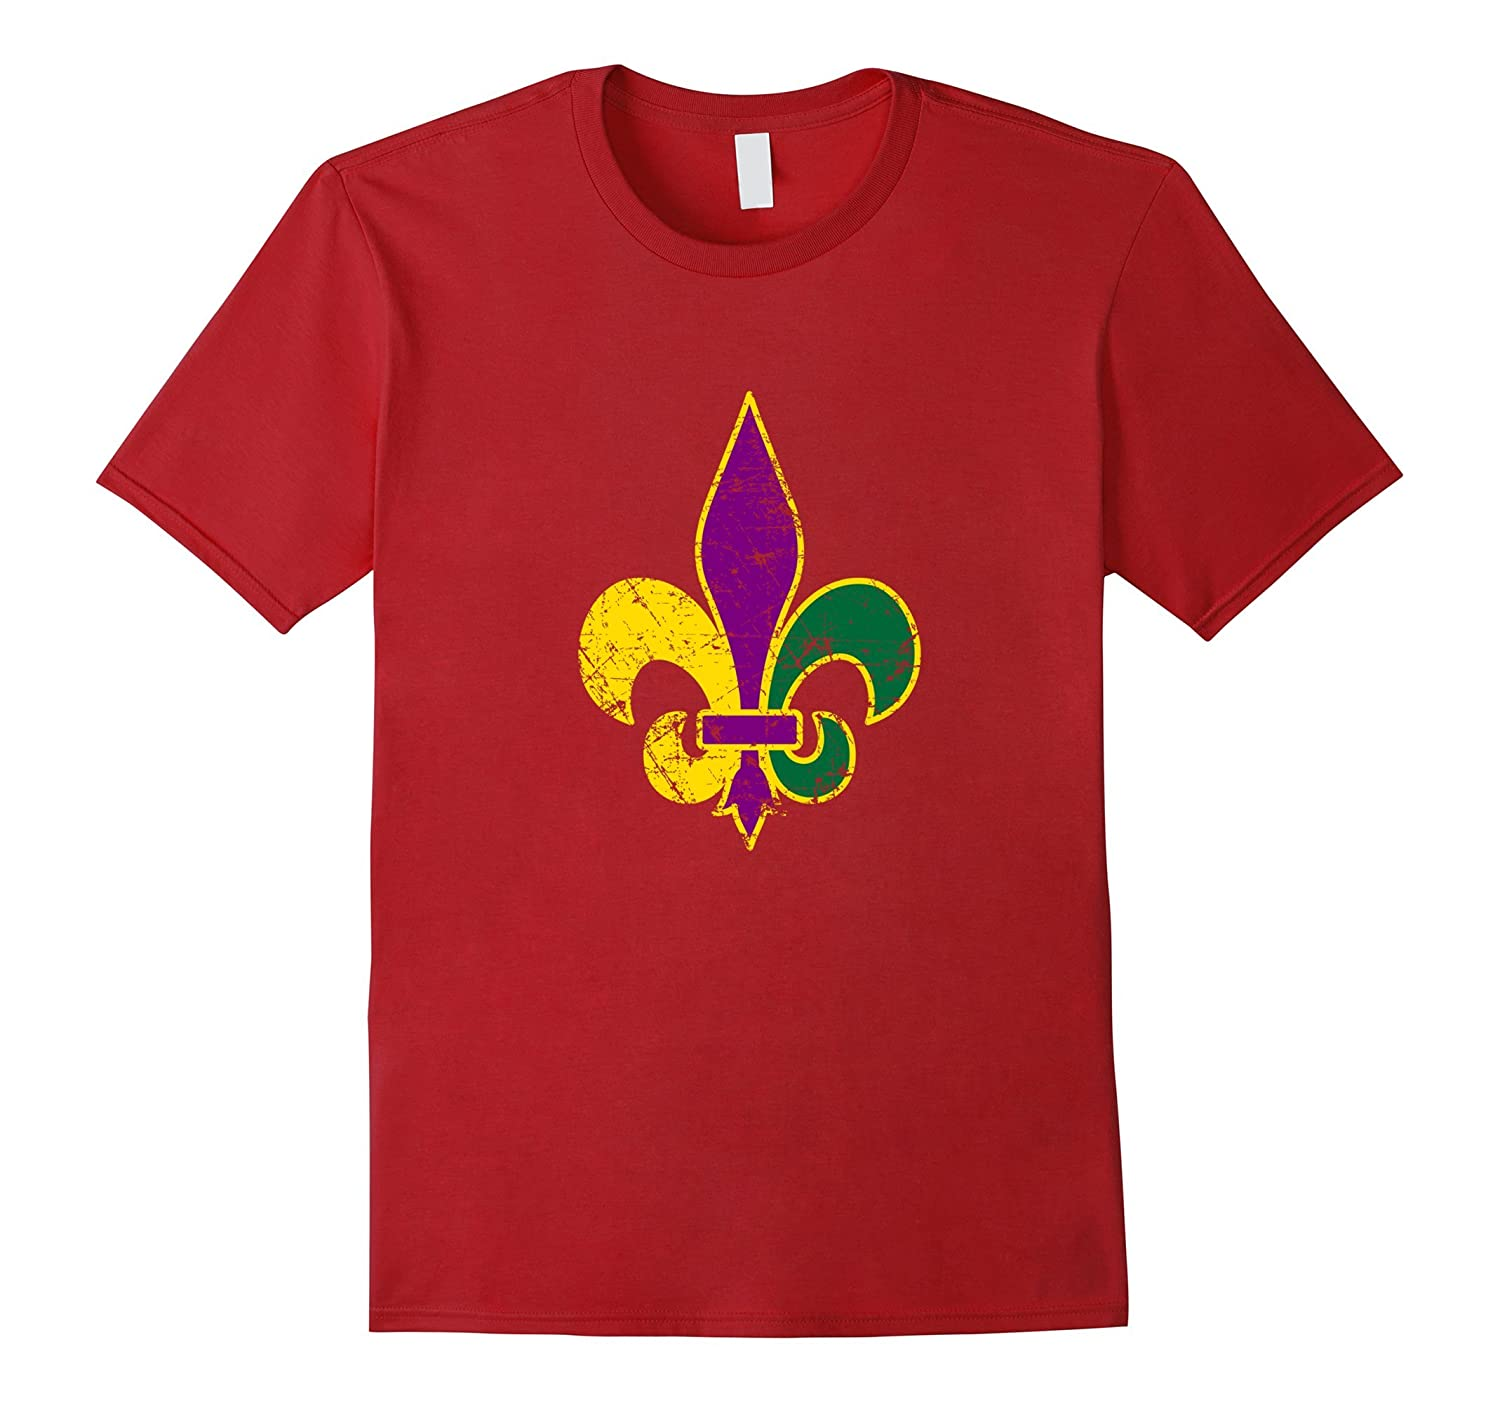 Mardi Gras Shirt Funny Cute Simple Celebration Party Gift-TD